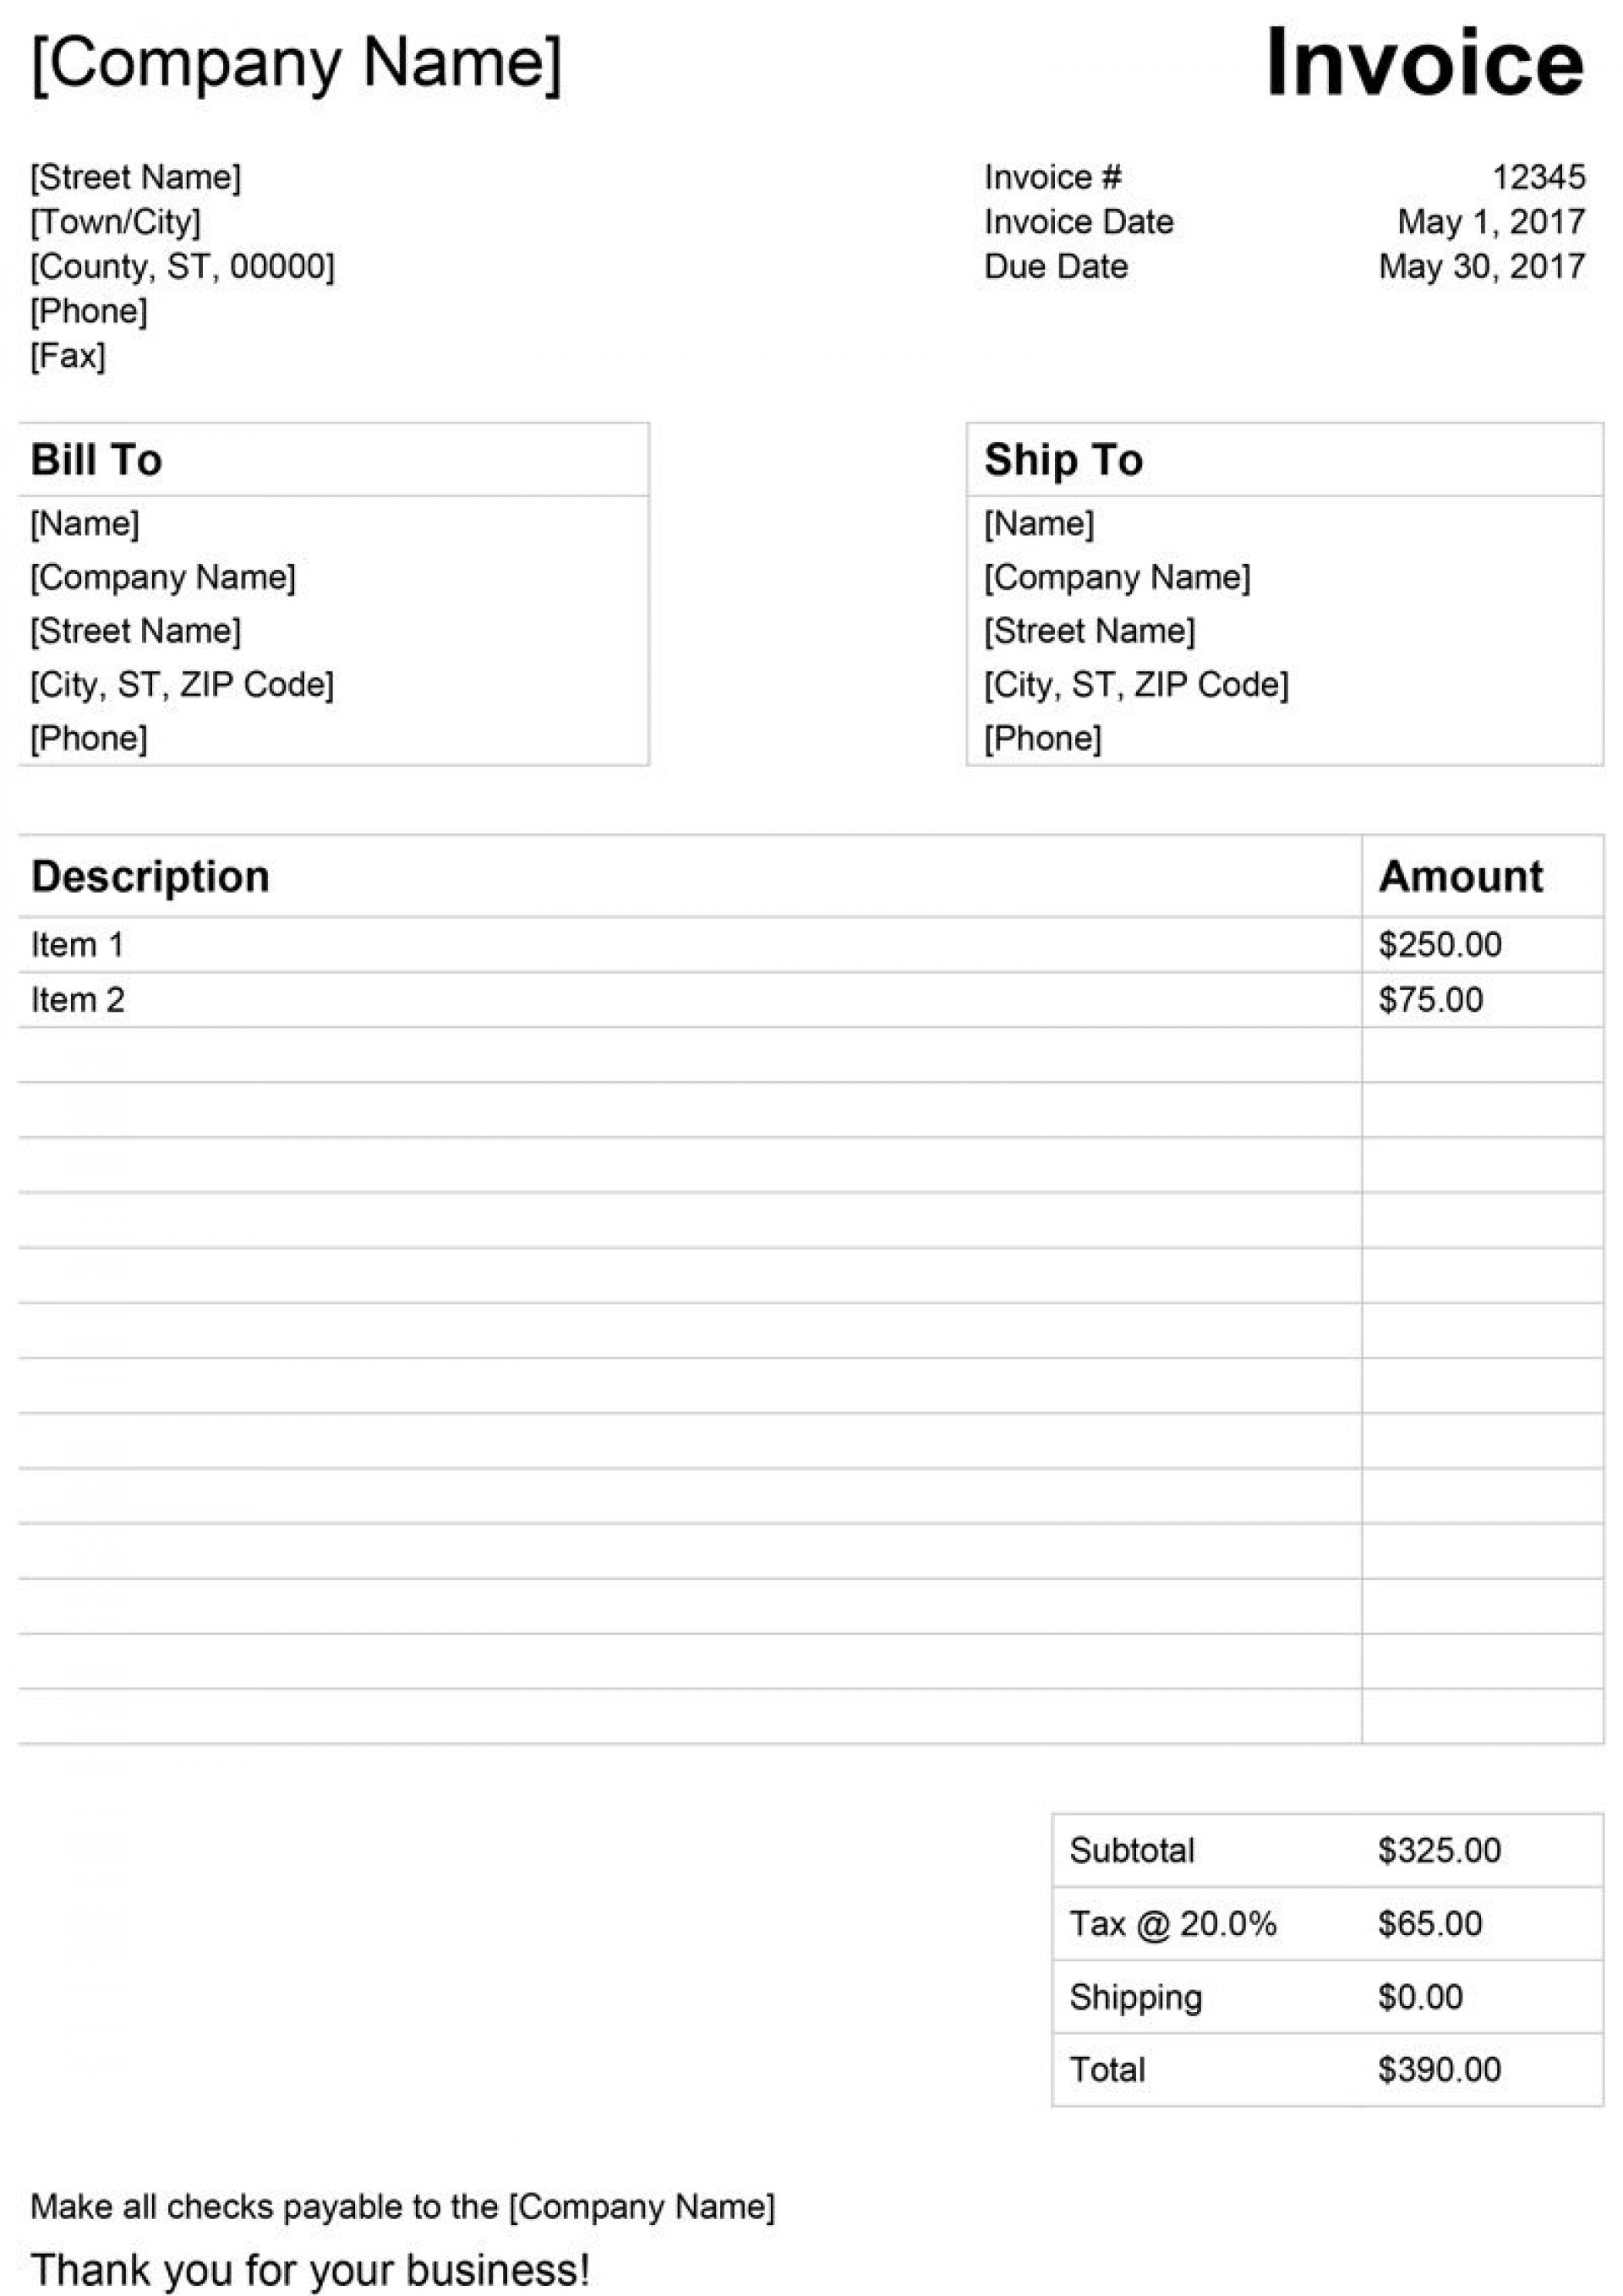 009 Exceptional Simple Invoice Template Word Design  Cash Receipt Doc Download Microsoft1920